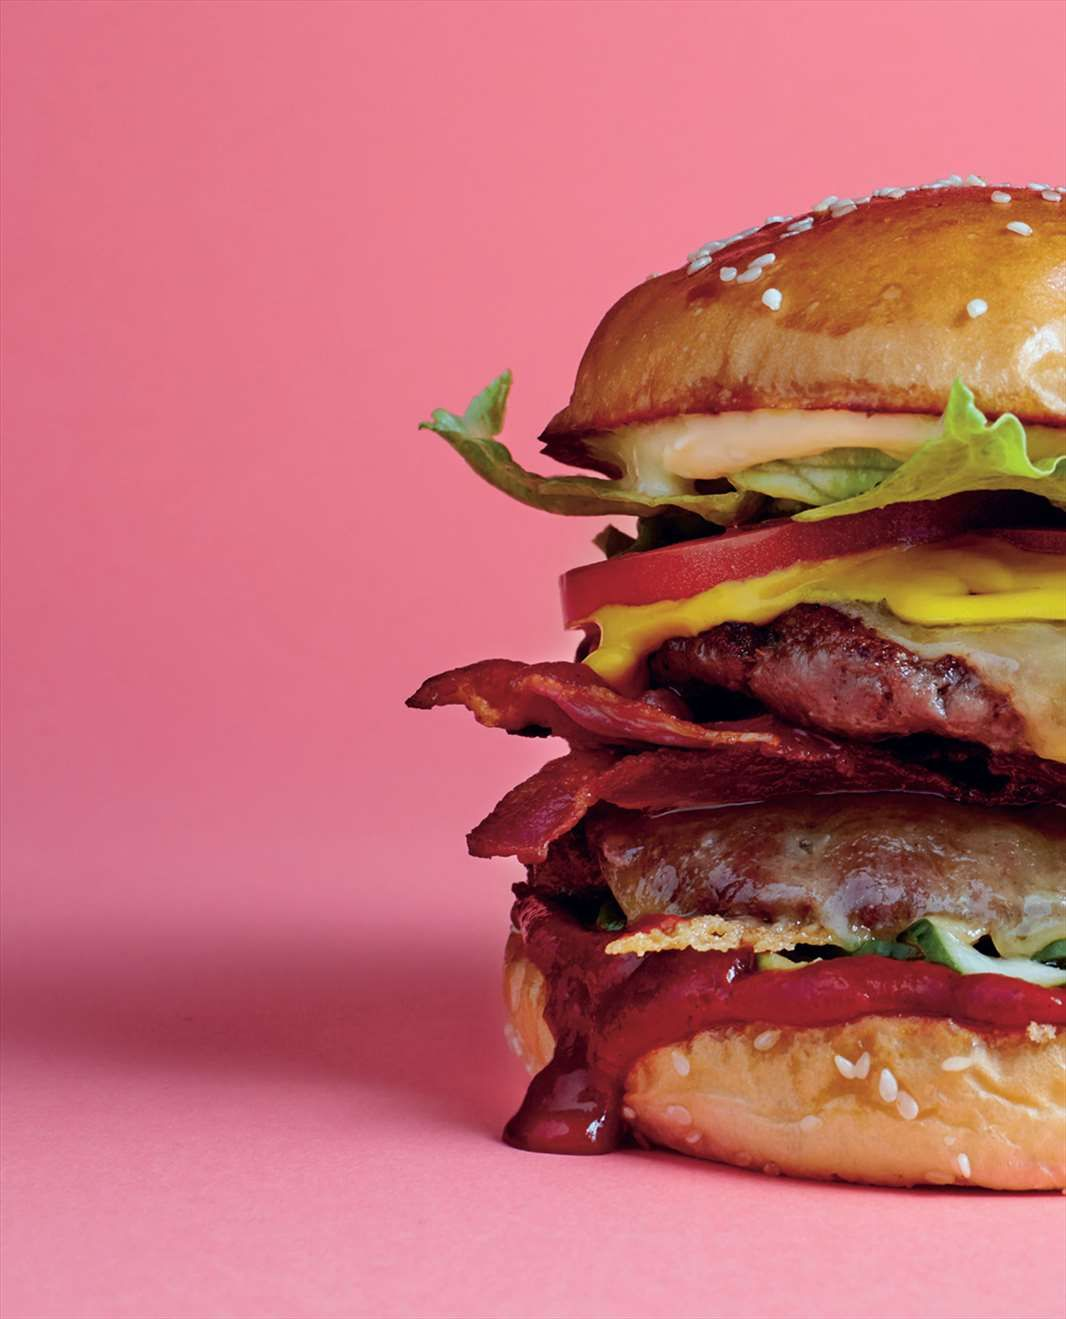 Theo - Double cheeseburger with bacon by Daniel Wilson from The Huxtaburger Book